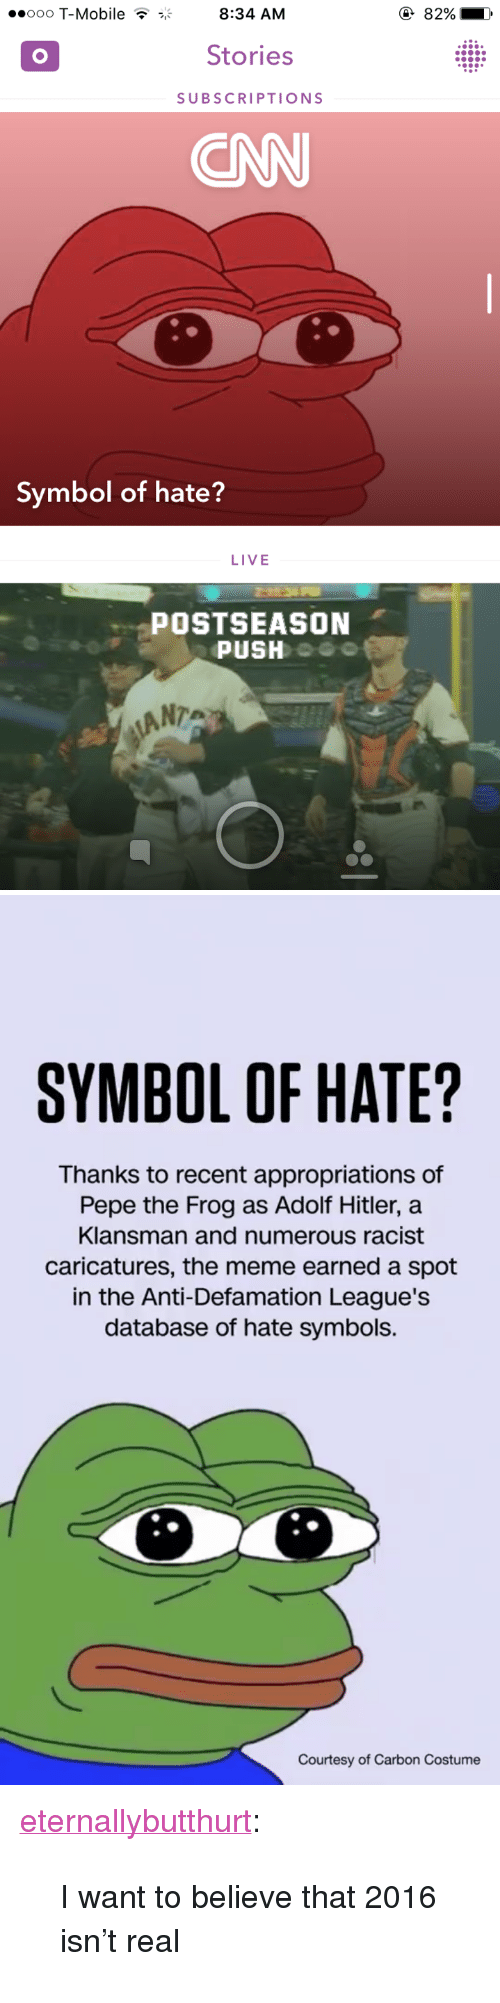 "Meme, Pepe the Frog, and T-Mobile: ooo T-Mobile T8:34 AM  82%  Stories  SUBSCRIPTIONS  ONN  Symbol of hate?  LIVE  POSTSEASON  PUSH  ANTA   SYMBOL OF HATE?  Thanks to recent appropriations of  Pepe the Frog as Adolf Hitler, a  Klansman and numerous racist  caricatures, the meme earned a spot  in the Anti-Defamation League's  database of hate symbols.  Courtesy of Carbon Costume <p><a href=""http://eternallybutthurt.tumblr.com/post/151056887413/i-want-to-believe-that-2016-isnt-real"" class=""tumblr_blog"" target=""_blank"">eternallybutthurt</a>:</p>  <blockquote><p>I want to believe that 2016 isn't real</p></blockquote>"